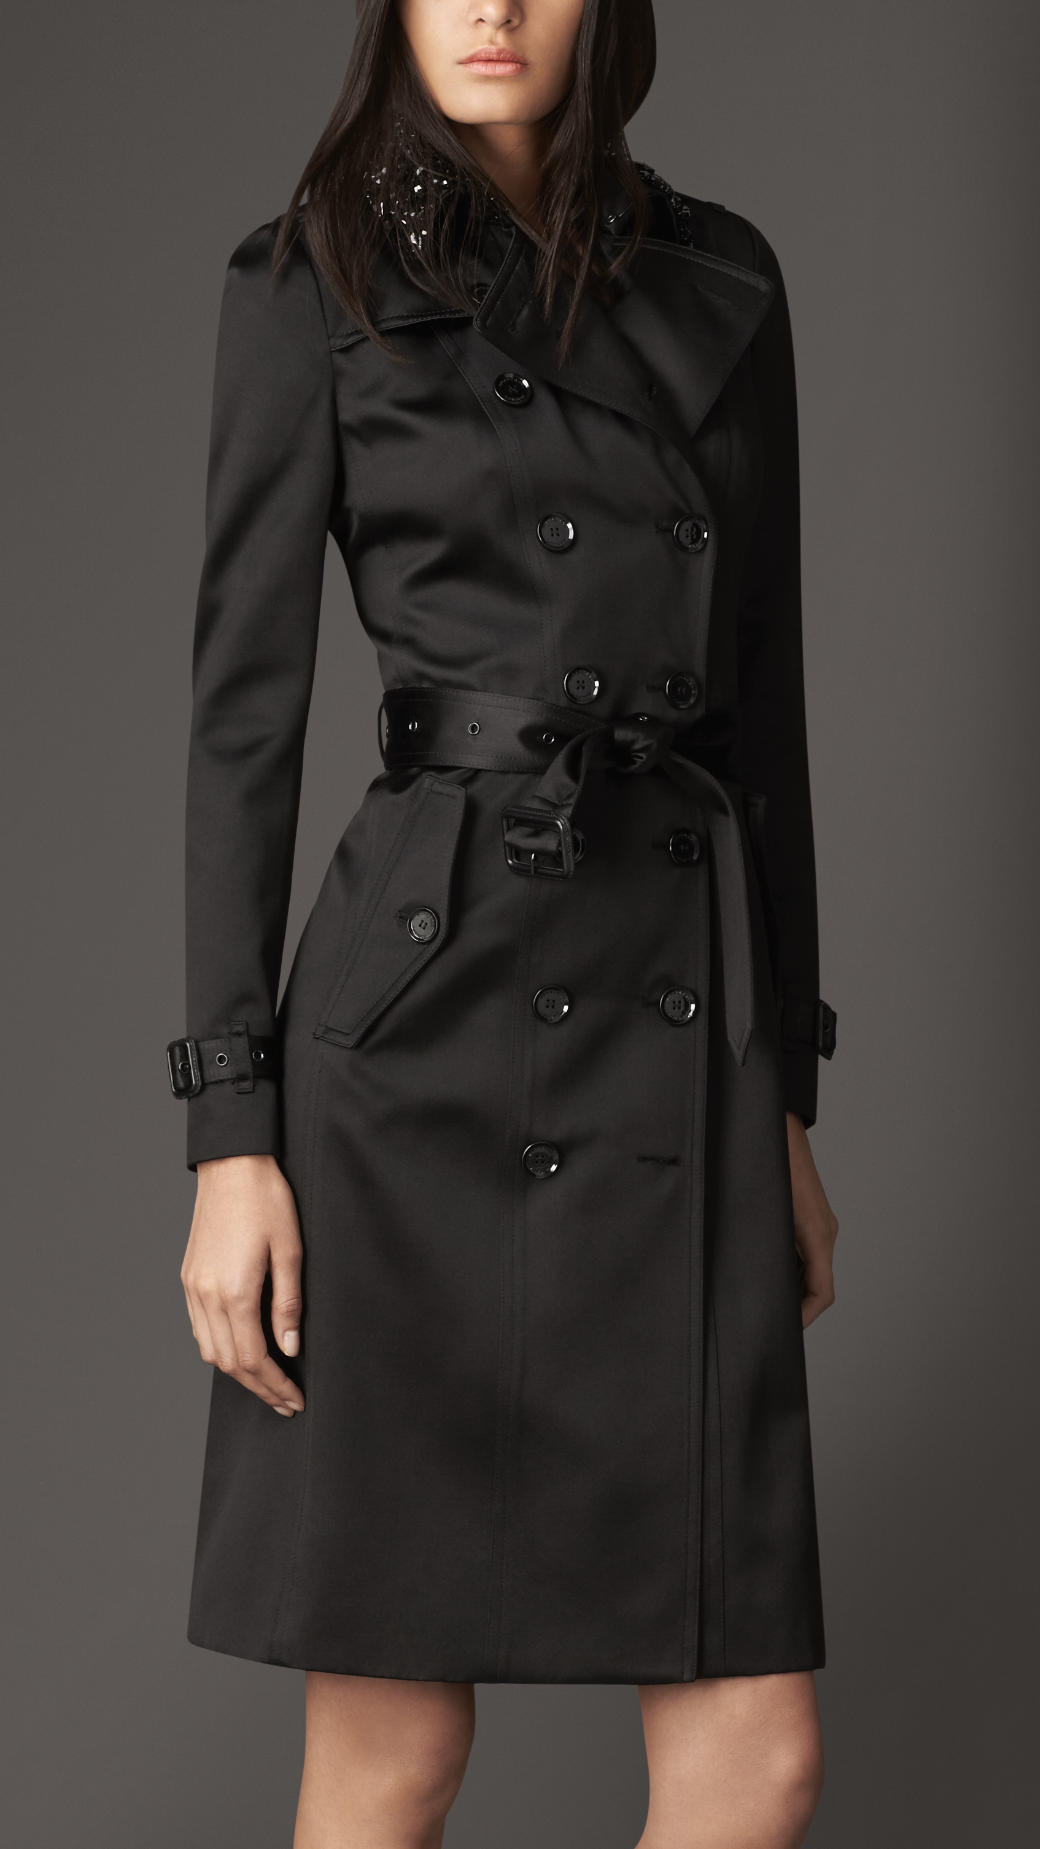 burrberry outlet shsd  burberry satin trench coat